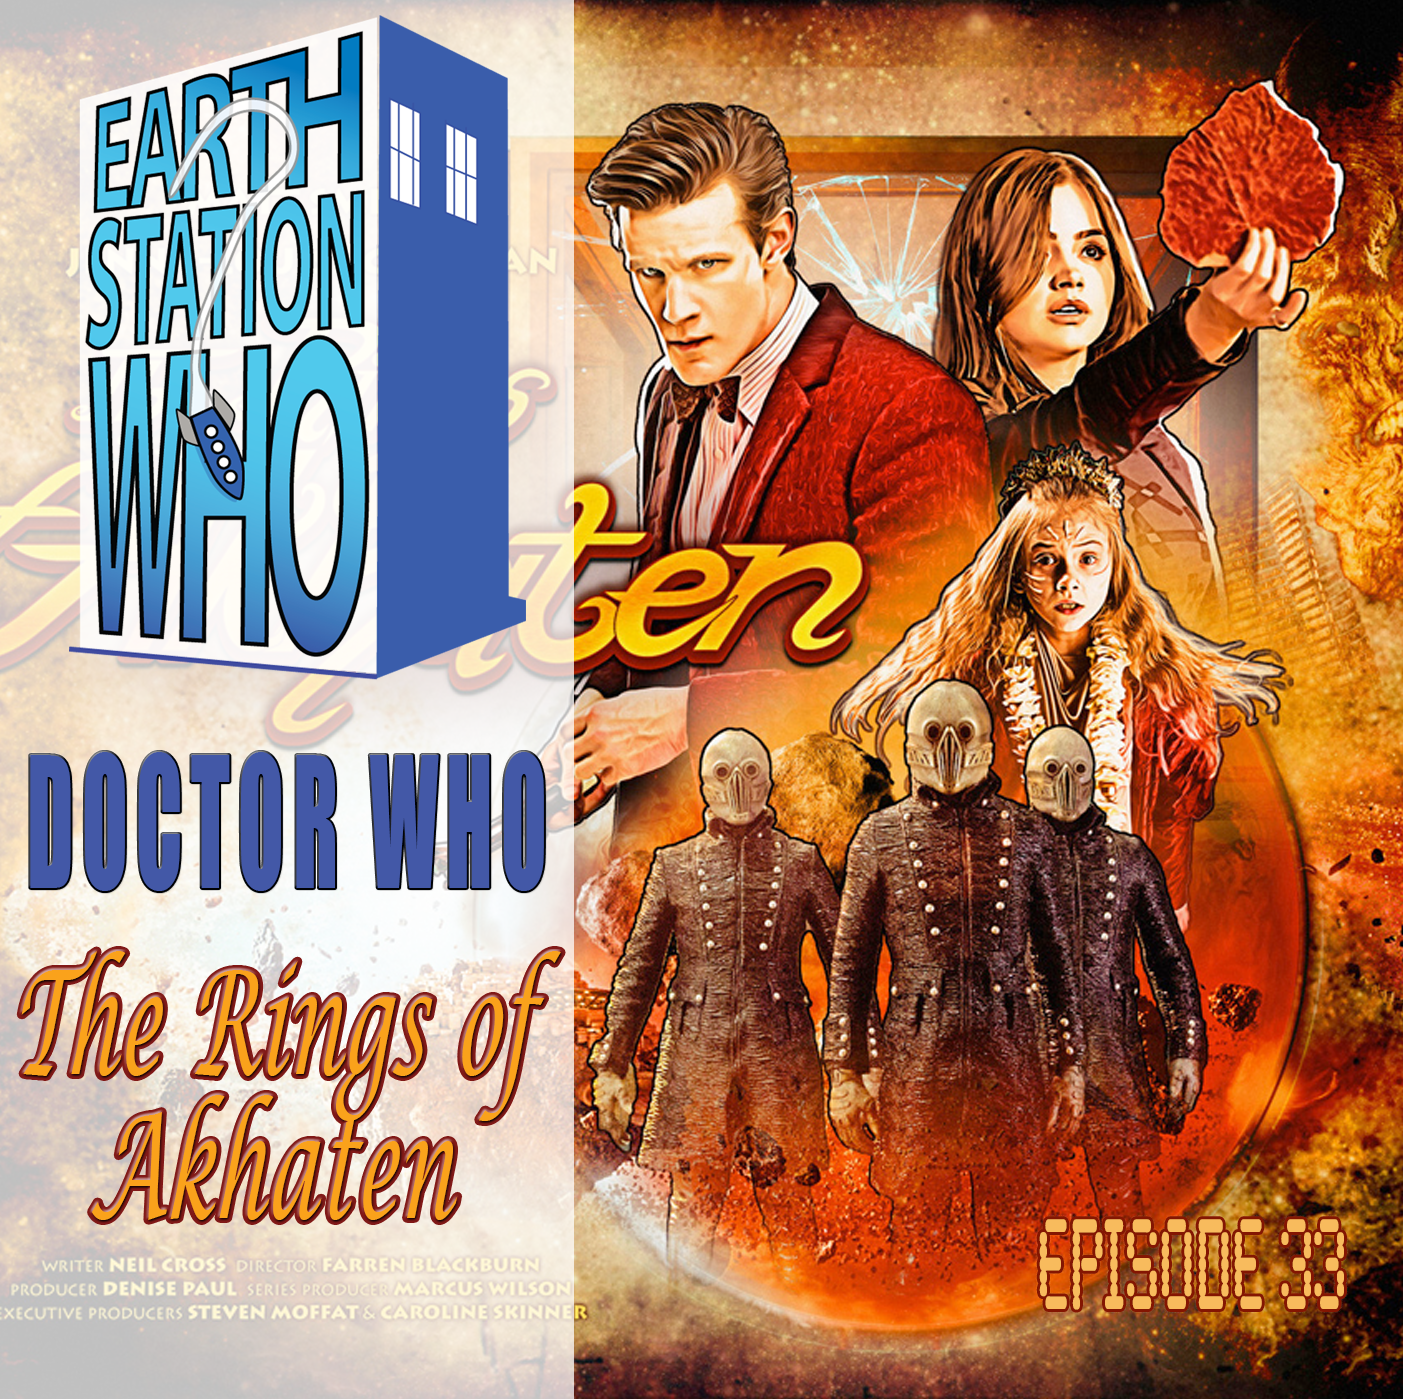 Earth Station Who Episode 33